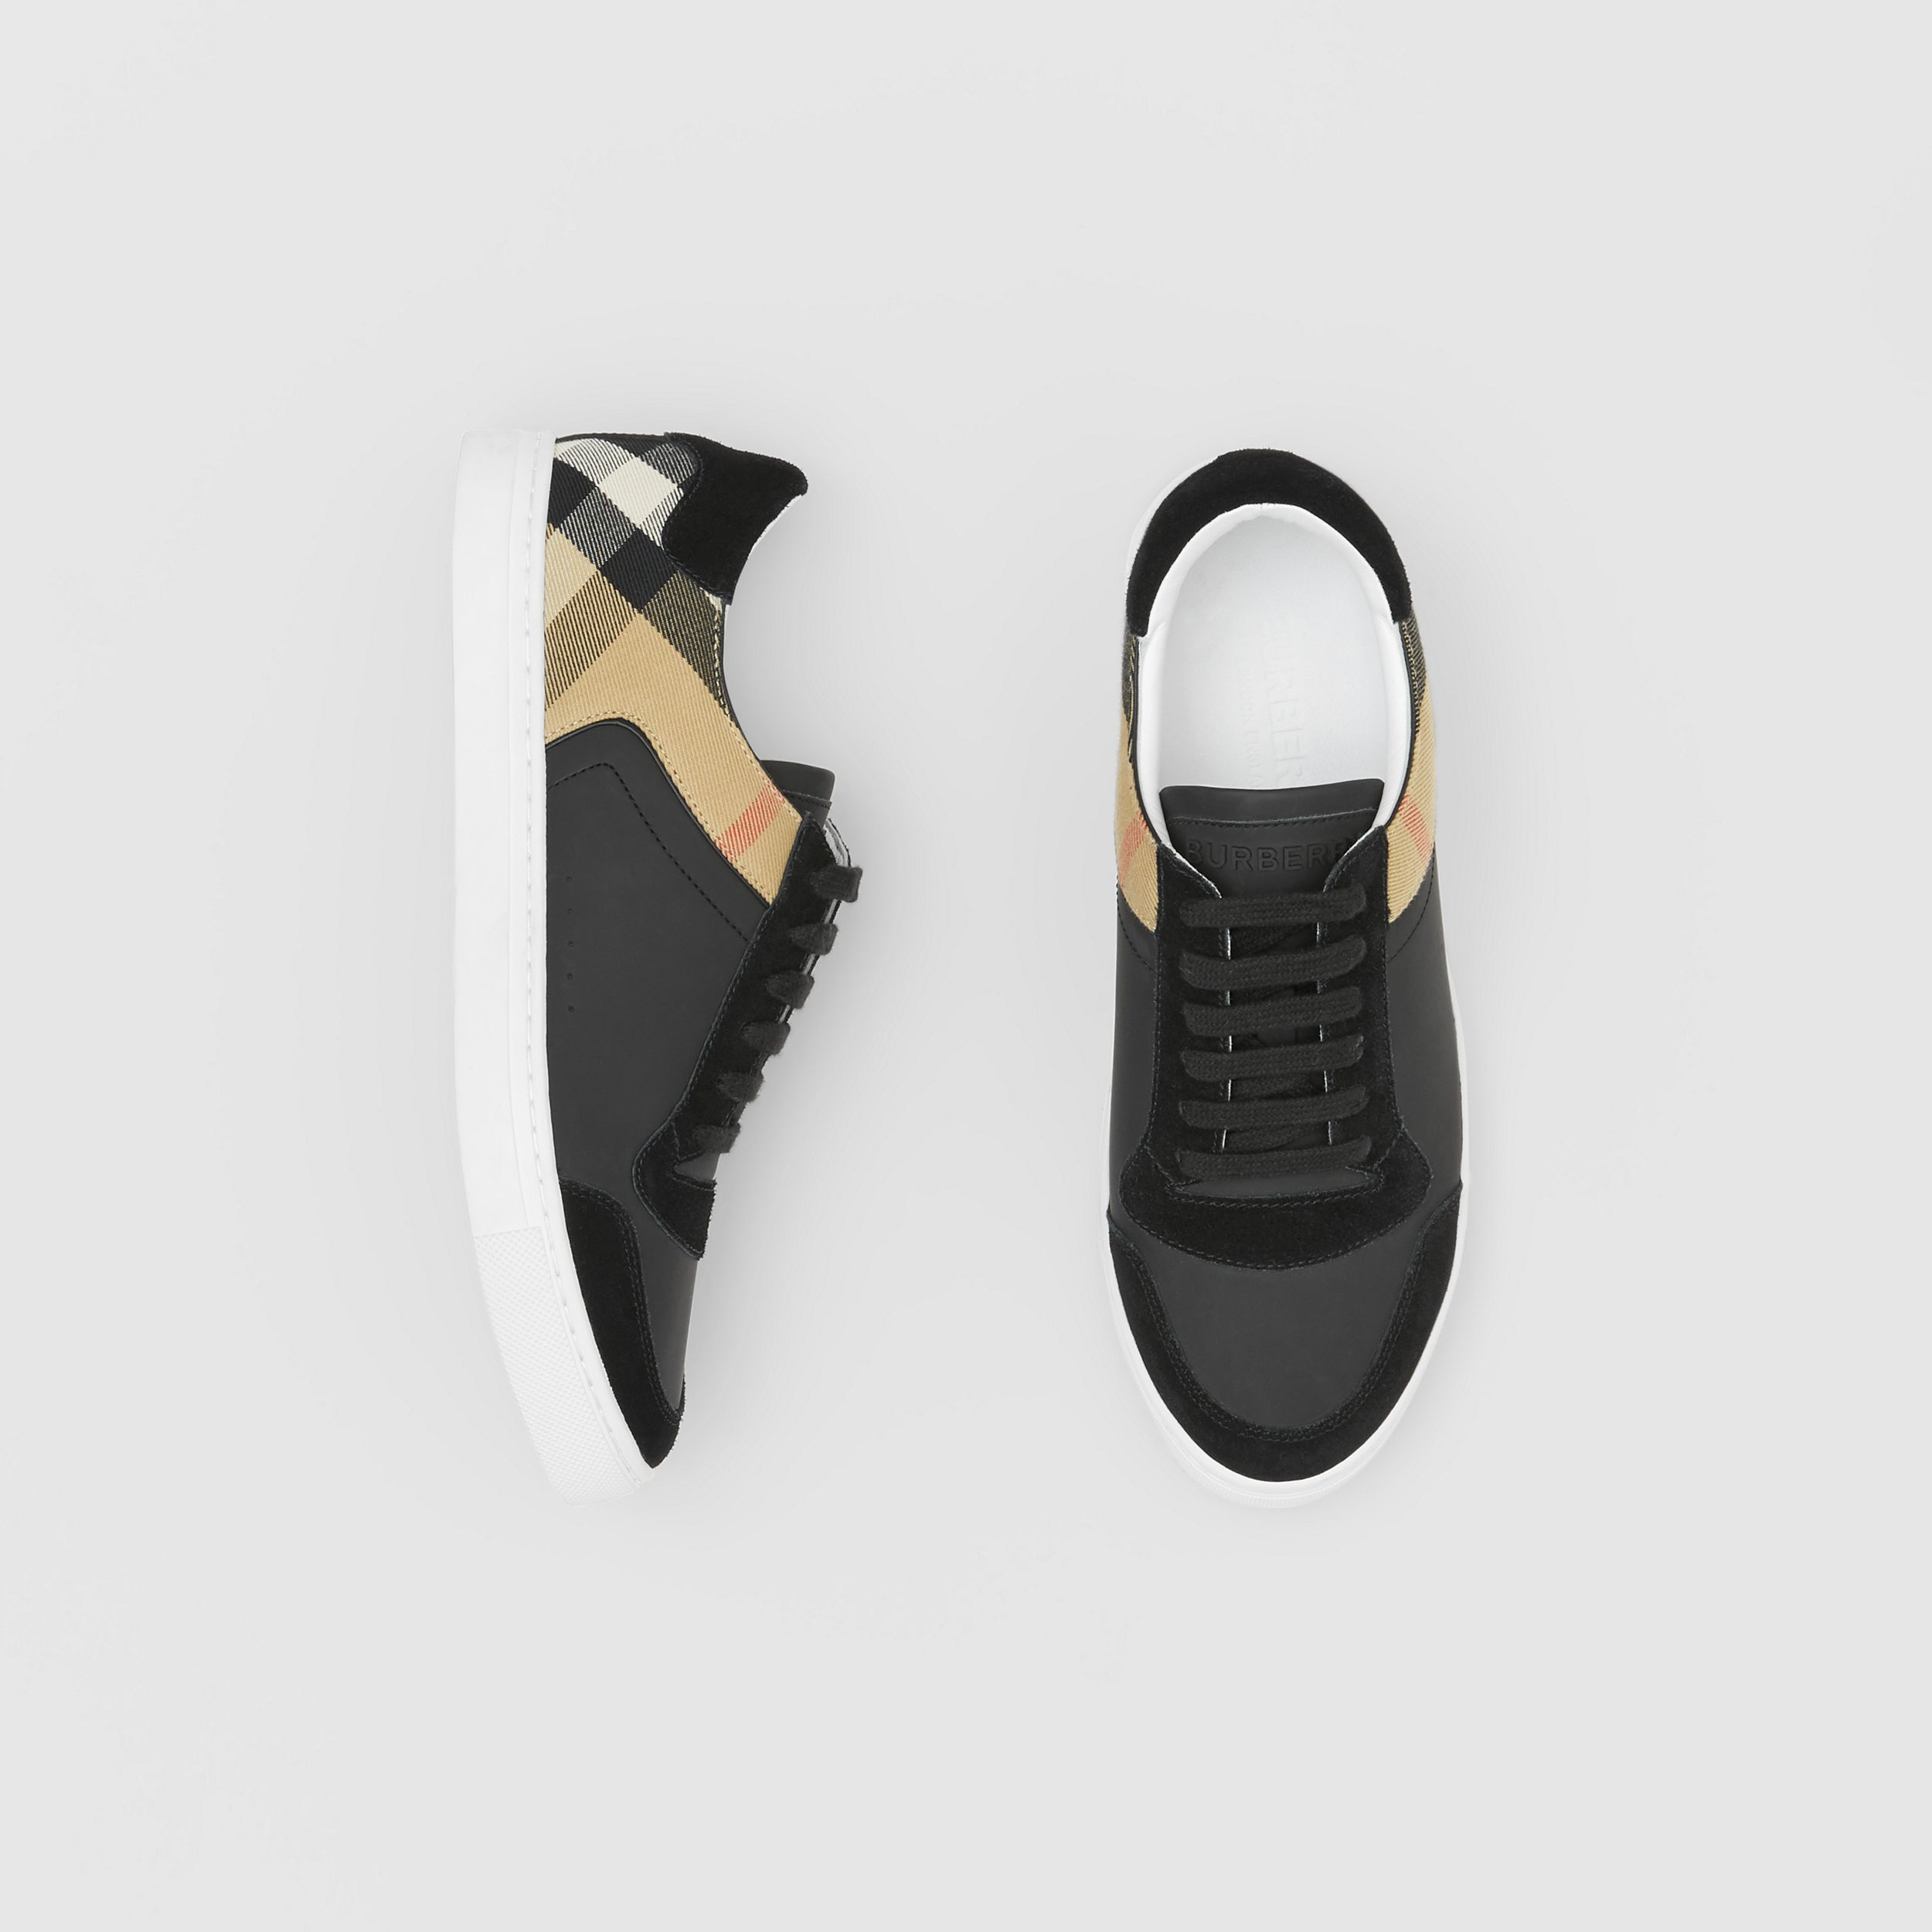 Leather, Suede and House Check Sneakers in Black - Men | Burberry - 1